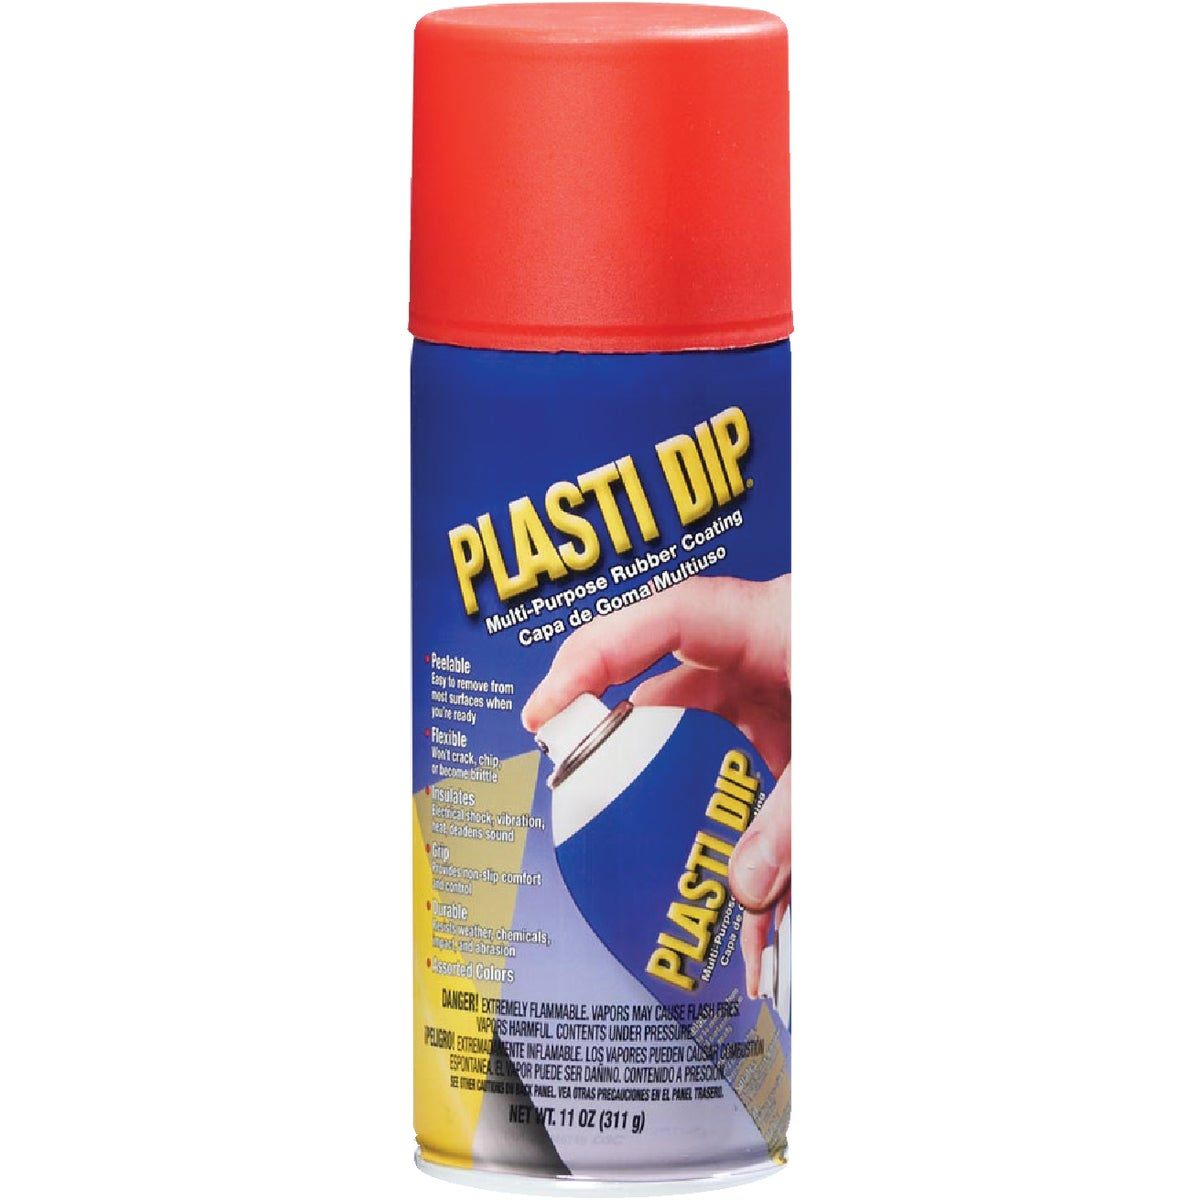 Item 330272, Performix Plasti Dip is a multipurpose, air dry, specialty rubber coating. It can be easily applied by dipping, brushing, or spraying.